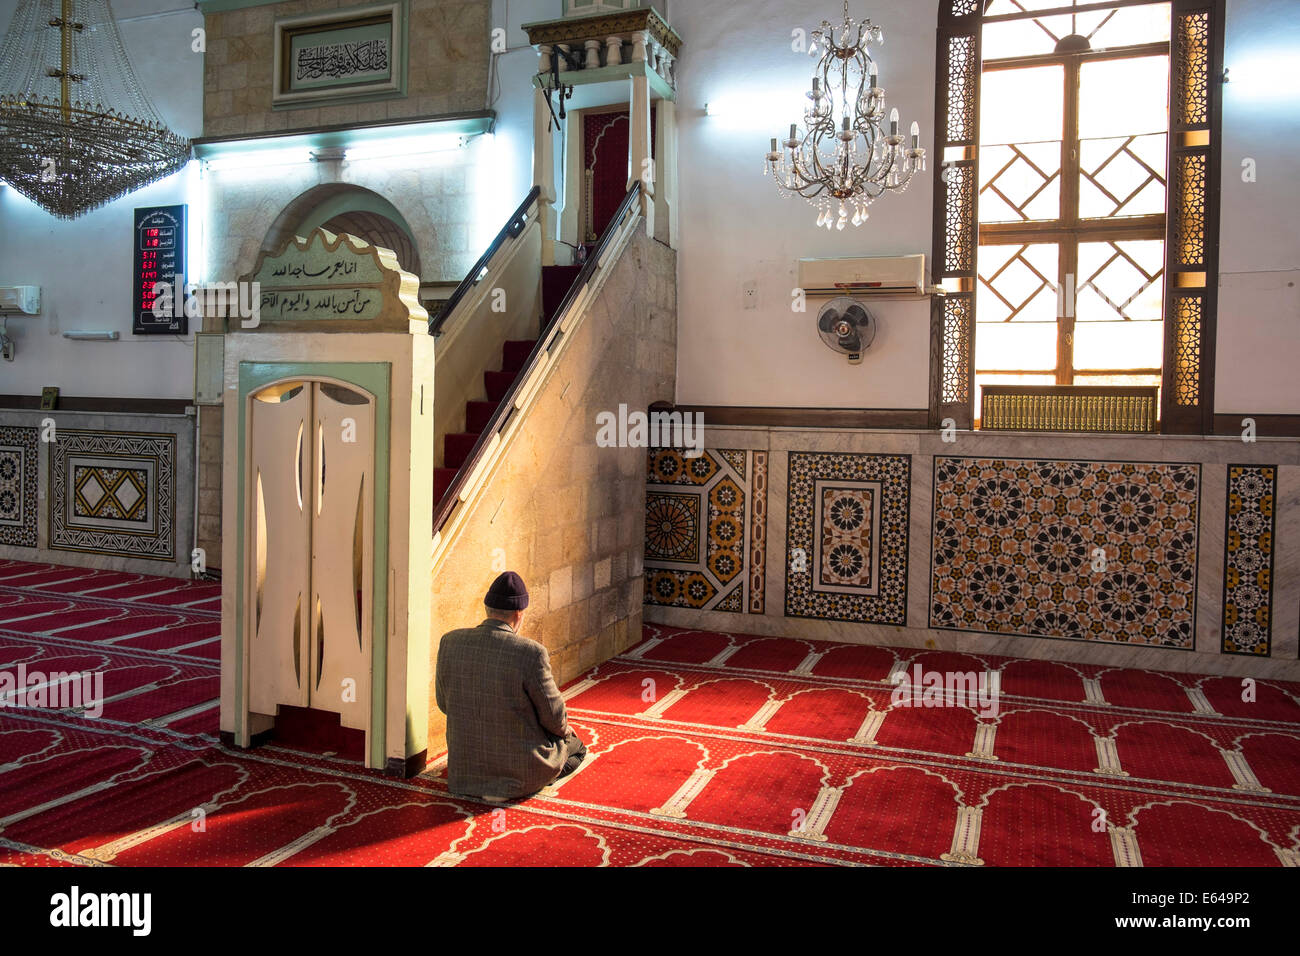 Man praying, Al-Husseiny mosque, (King Hussein) in downtown Amman, Jordan. - Stock Image